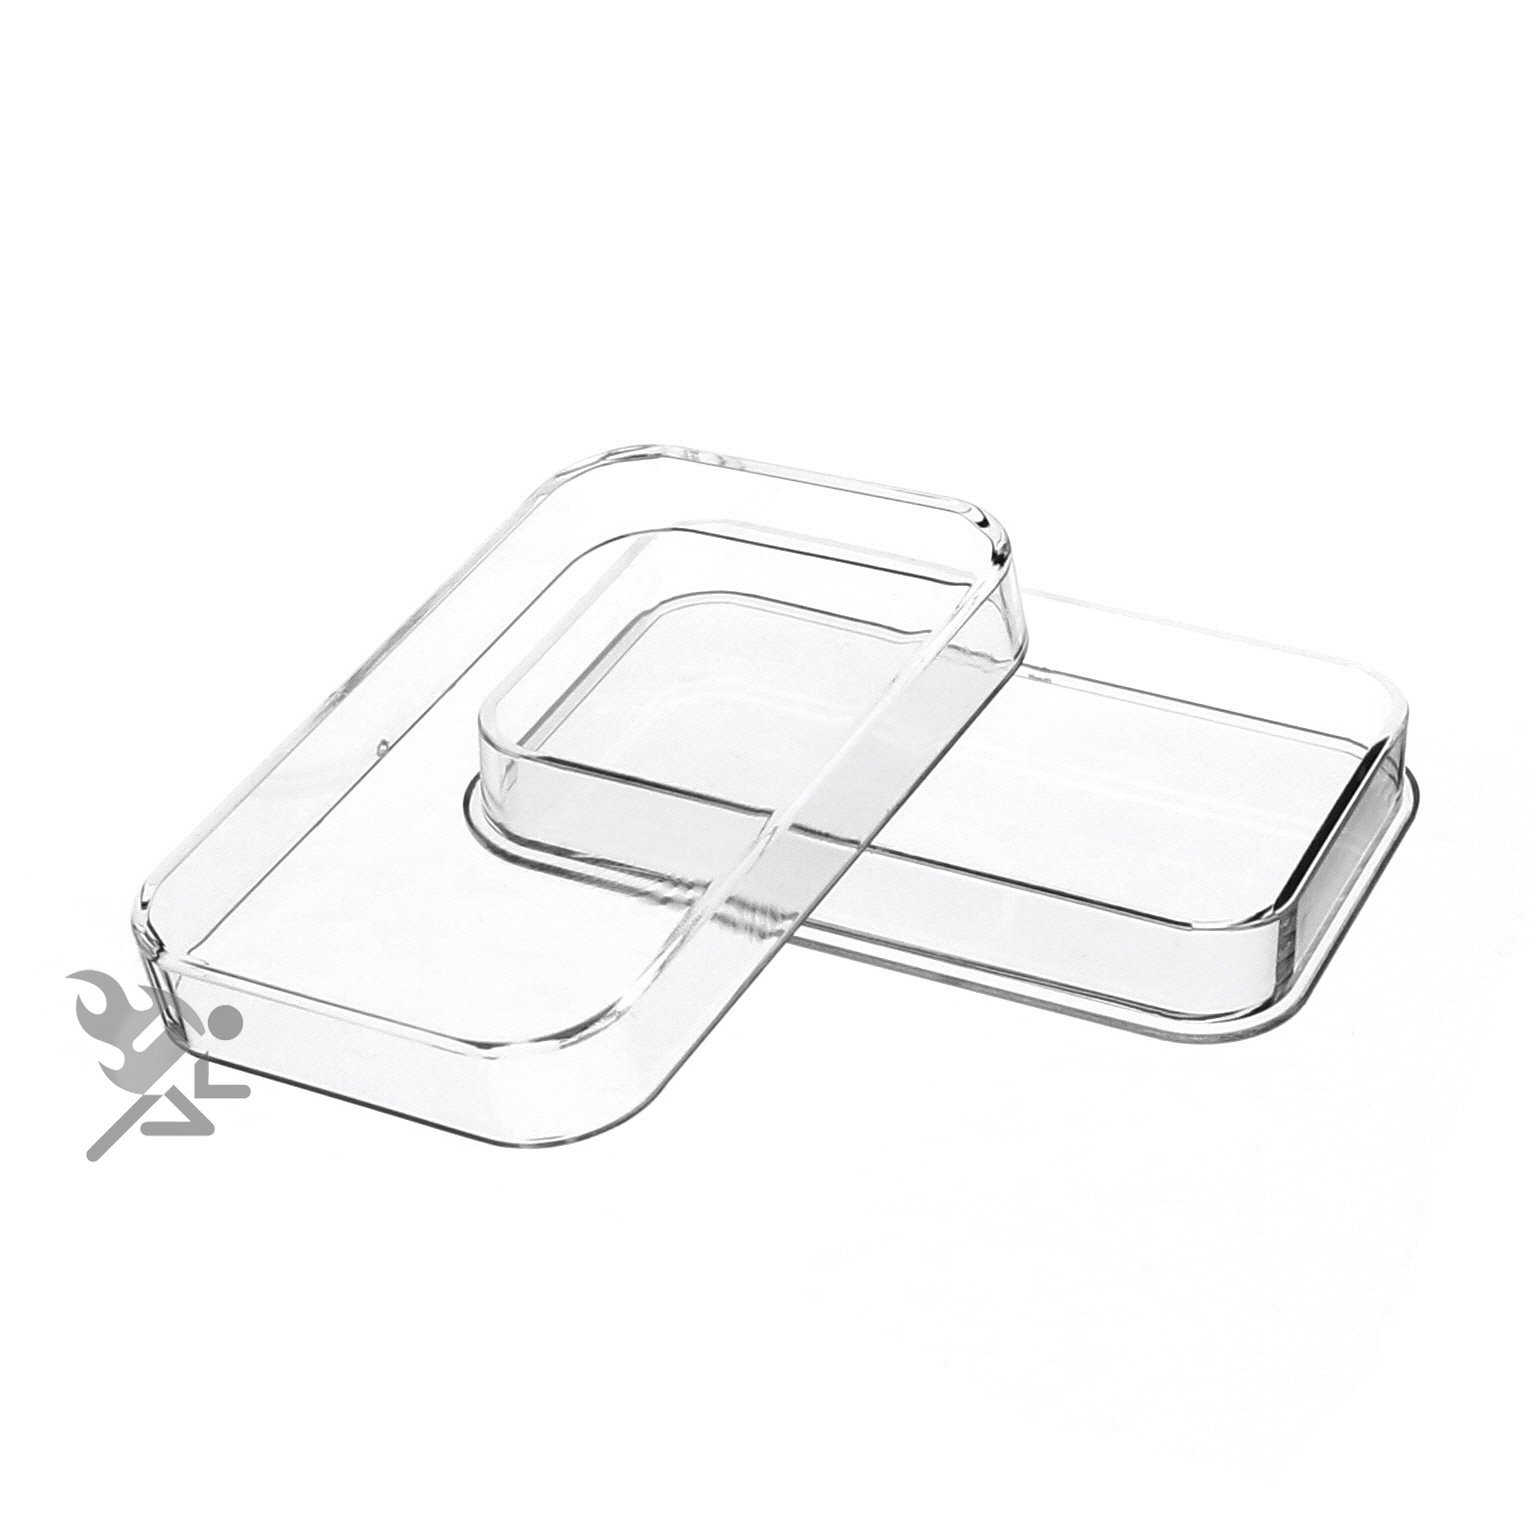 (10) Premium 5oz Silver Bar Holders by Air-Tite Brand for Scottsdale bars, Silvertowne's Art bars, and Silvertowne's standard 5oz bars. Archival Quality, PVC Free, and Crystal Clear Acrylic protect your investment